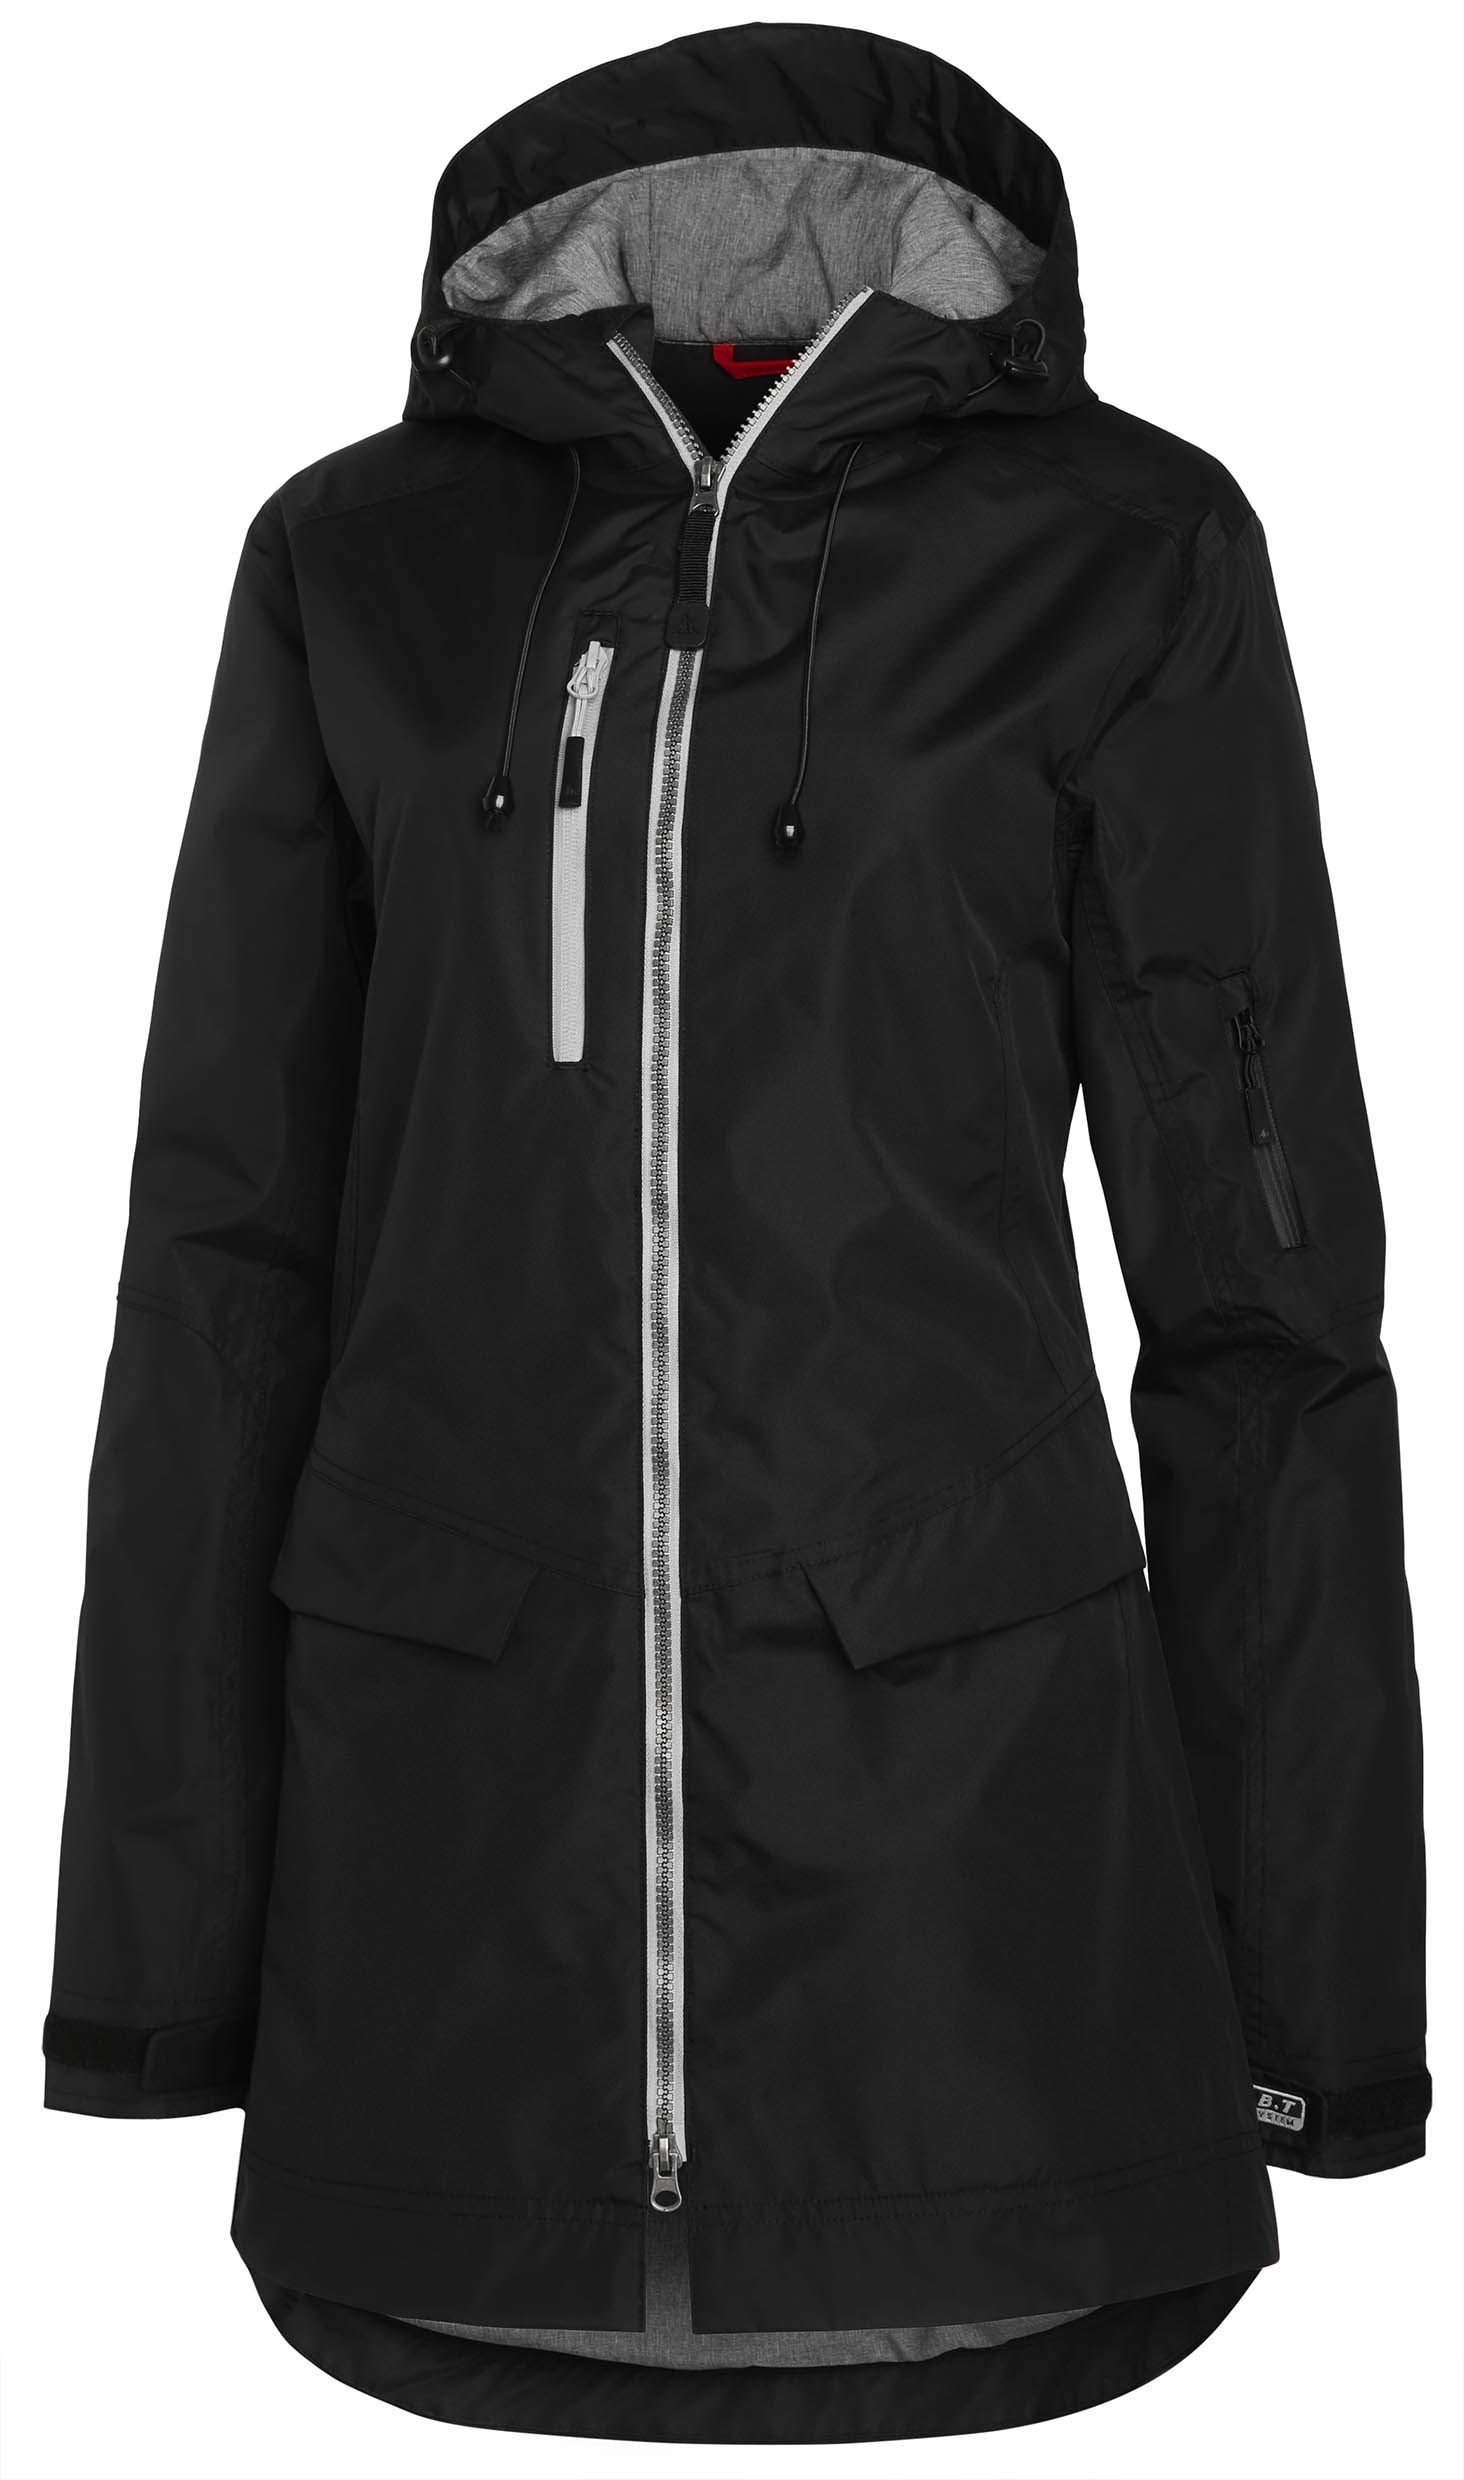 Matterhorn MH-496D Long Shell Jacket Ladies Black 34